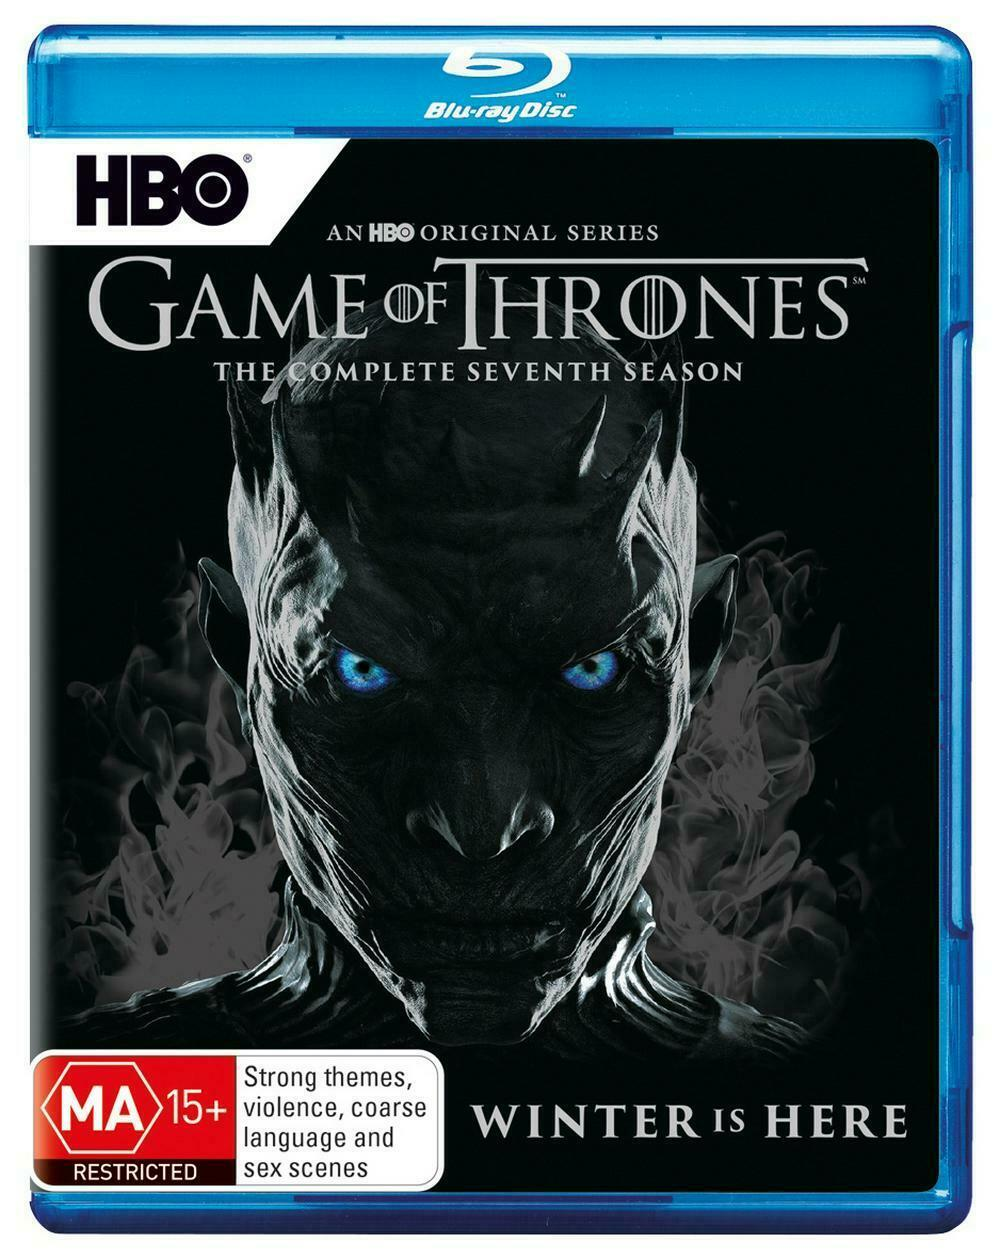 Game of Thrones - The Complete Seventh Season on Blu-ray image